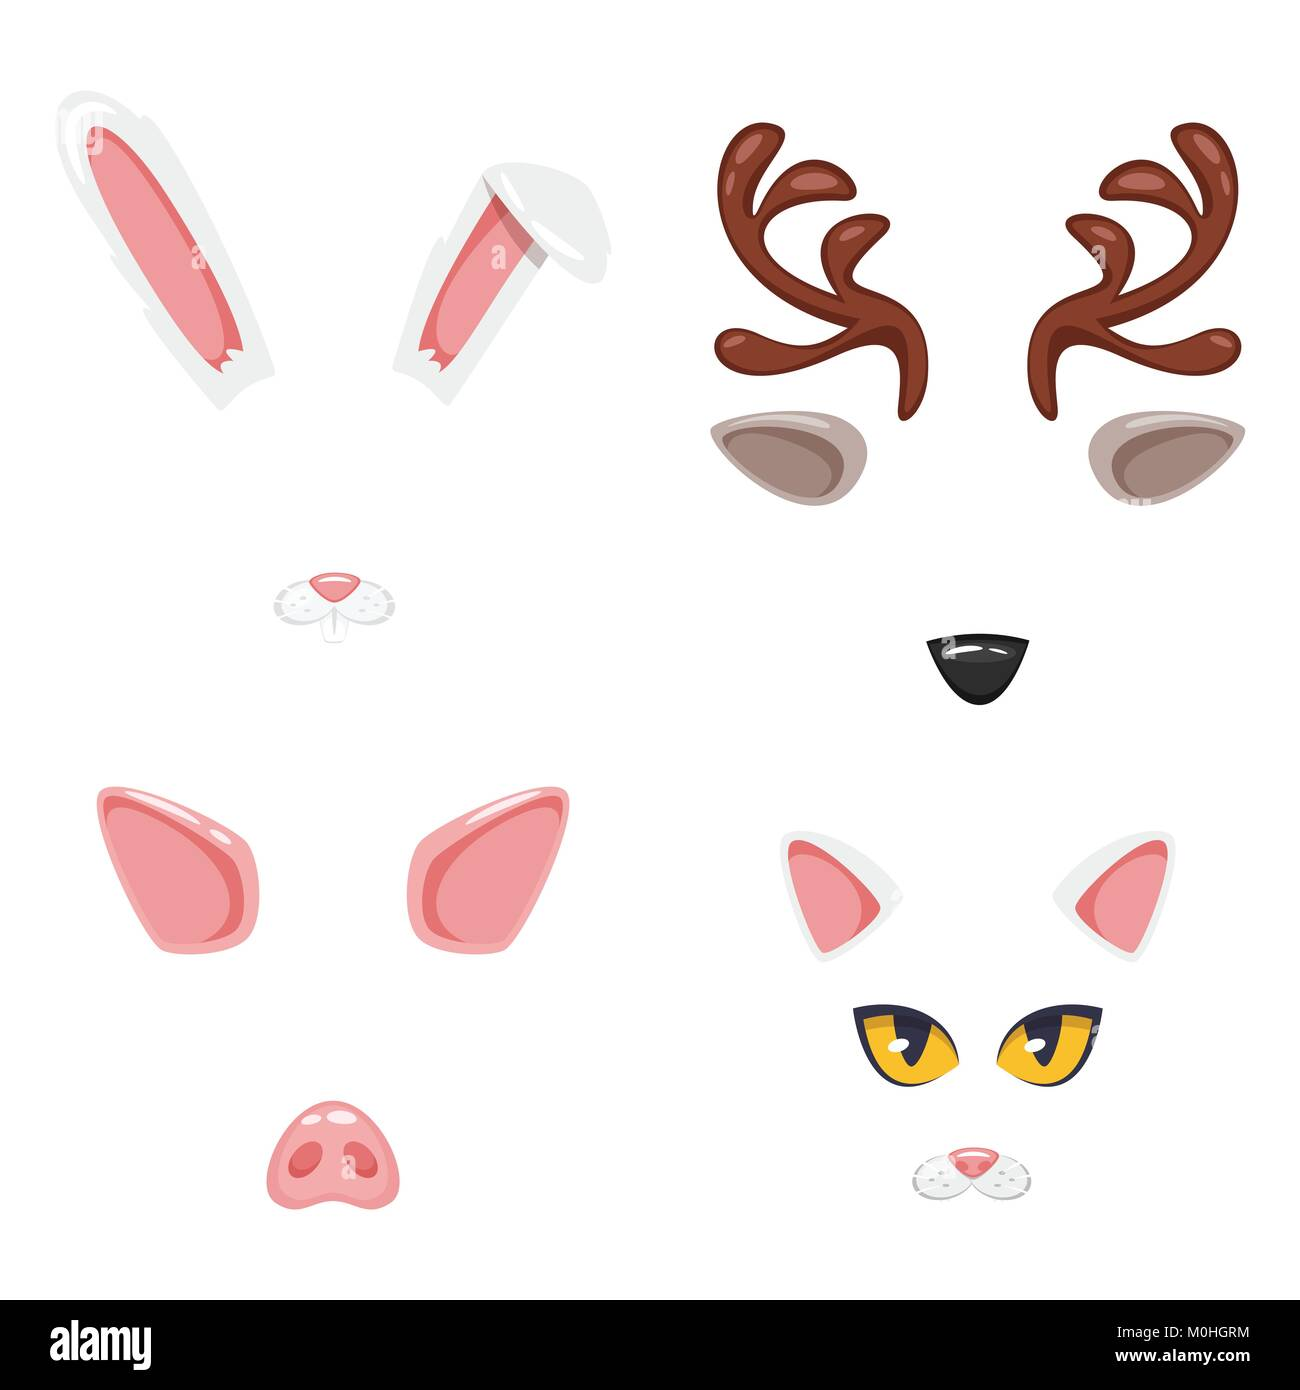 animal face or carnival mask - Stock Vector